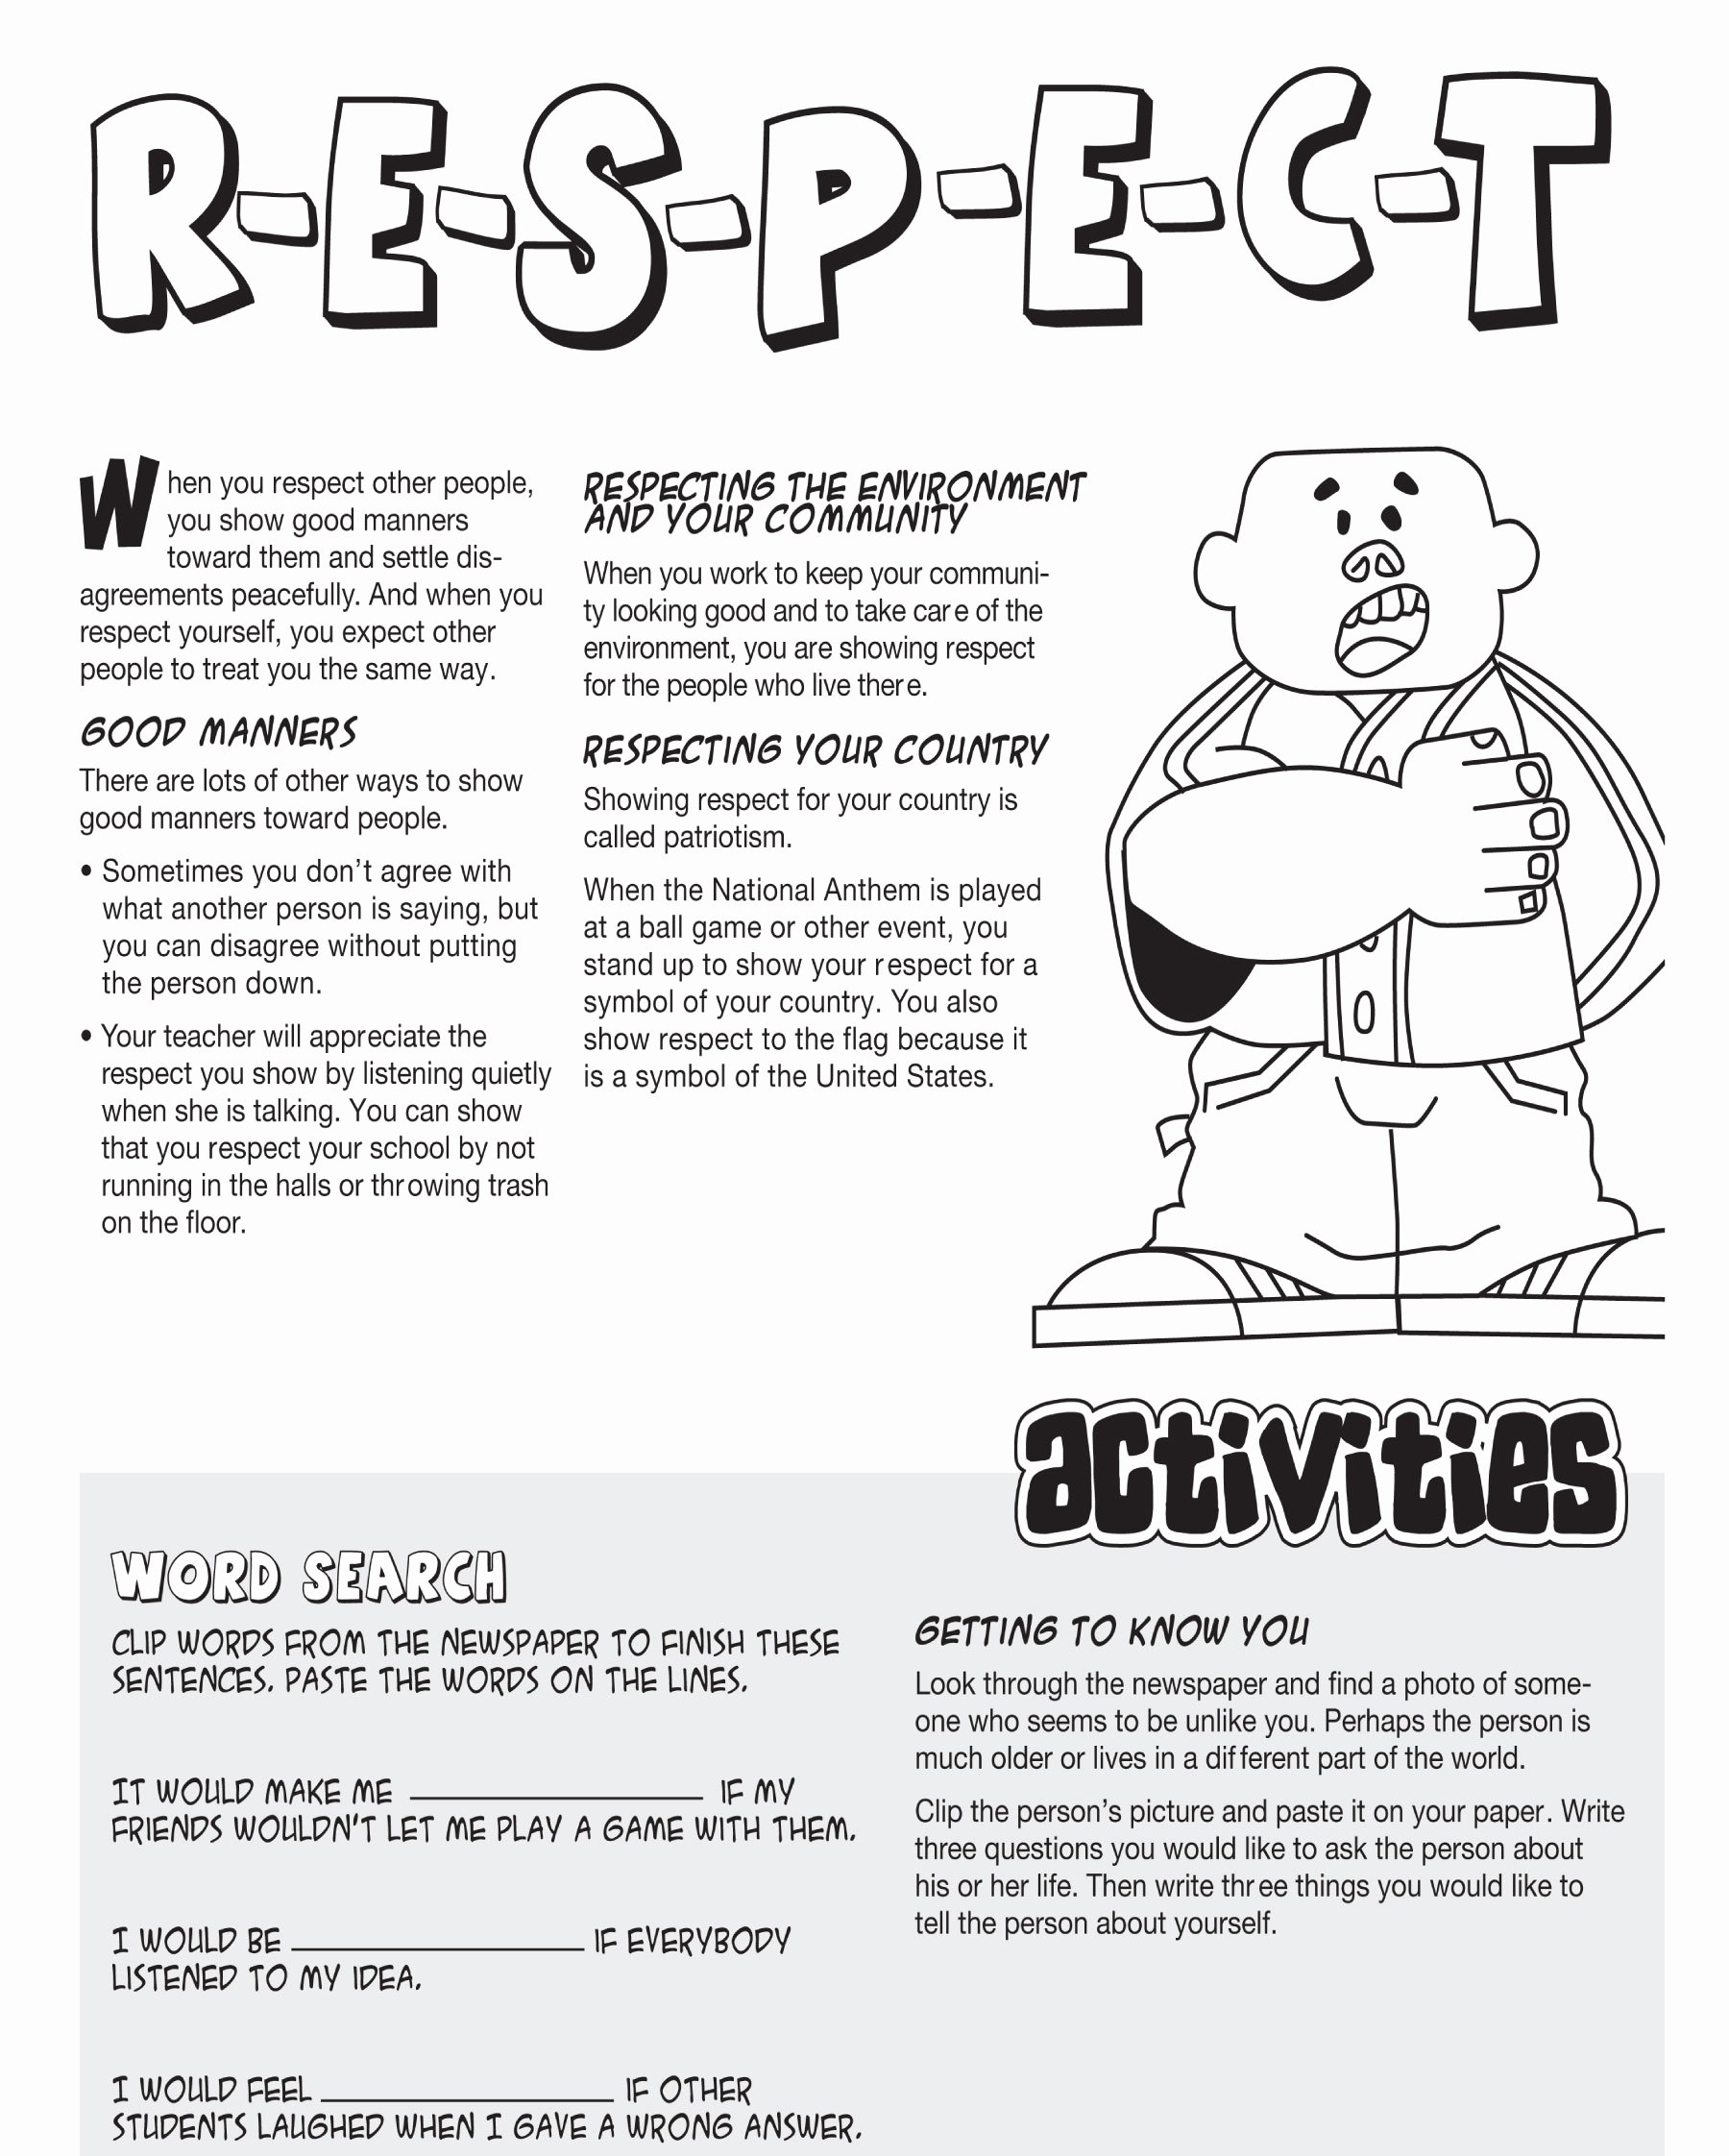 Respecting Others Property Worksheet Inspirational Grand forks High School Students Teach Respect & Caring at